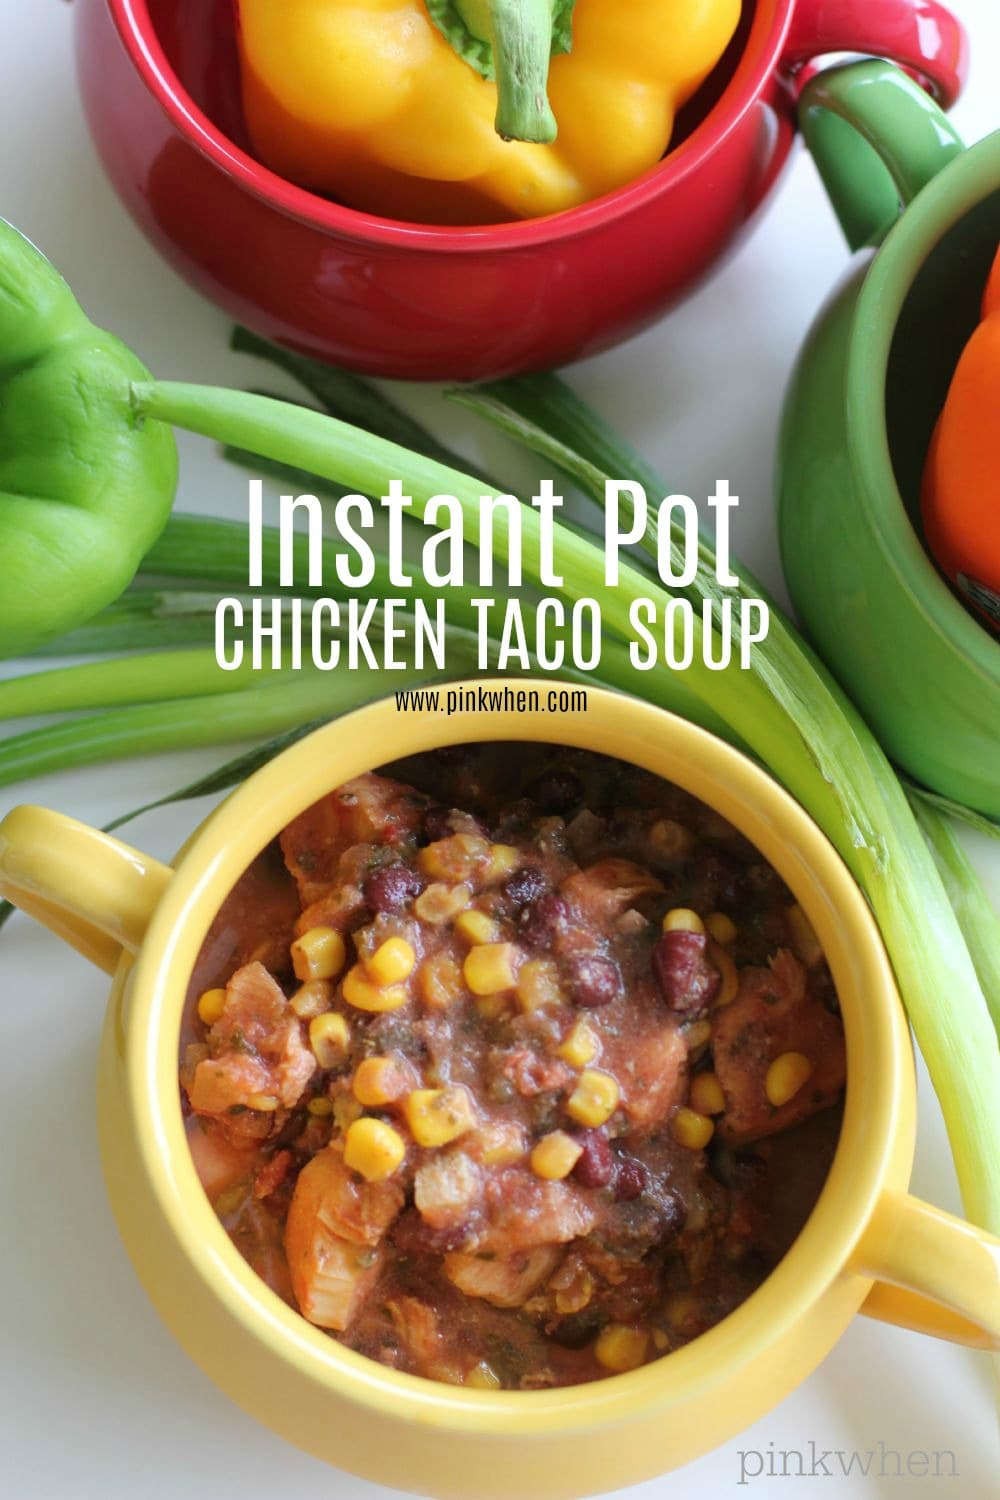 Full of fresh vegetables and made in under 30 minutes, this Instant Pot Chicken Taco Soup is my new favorite meal!